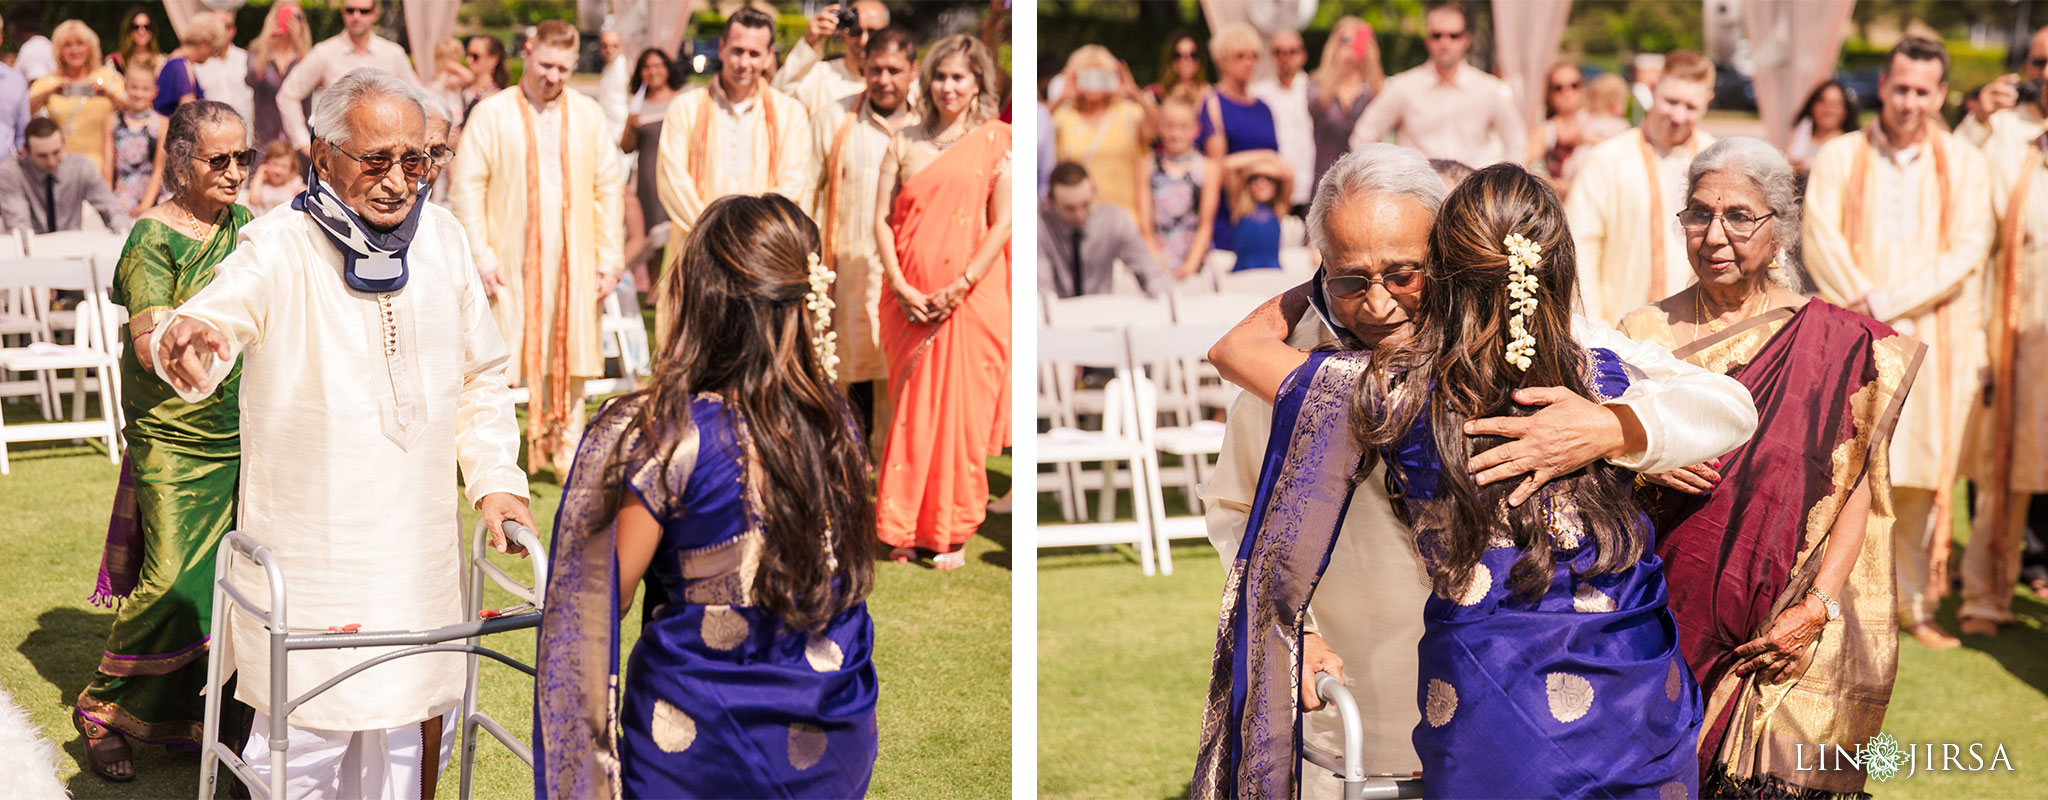 025 sherwood country club indian wedding ceremony photography